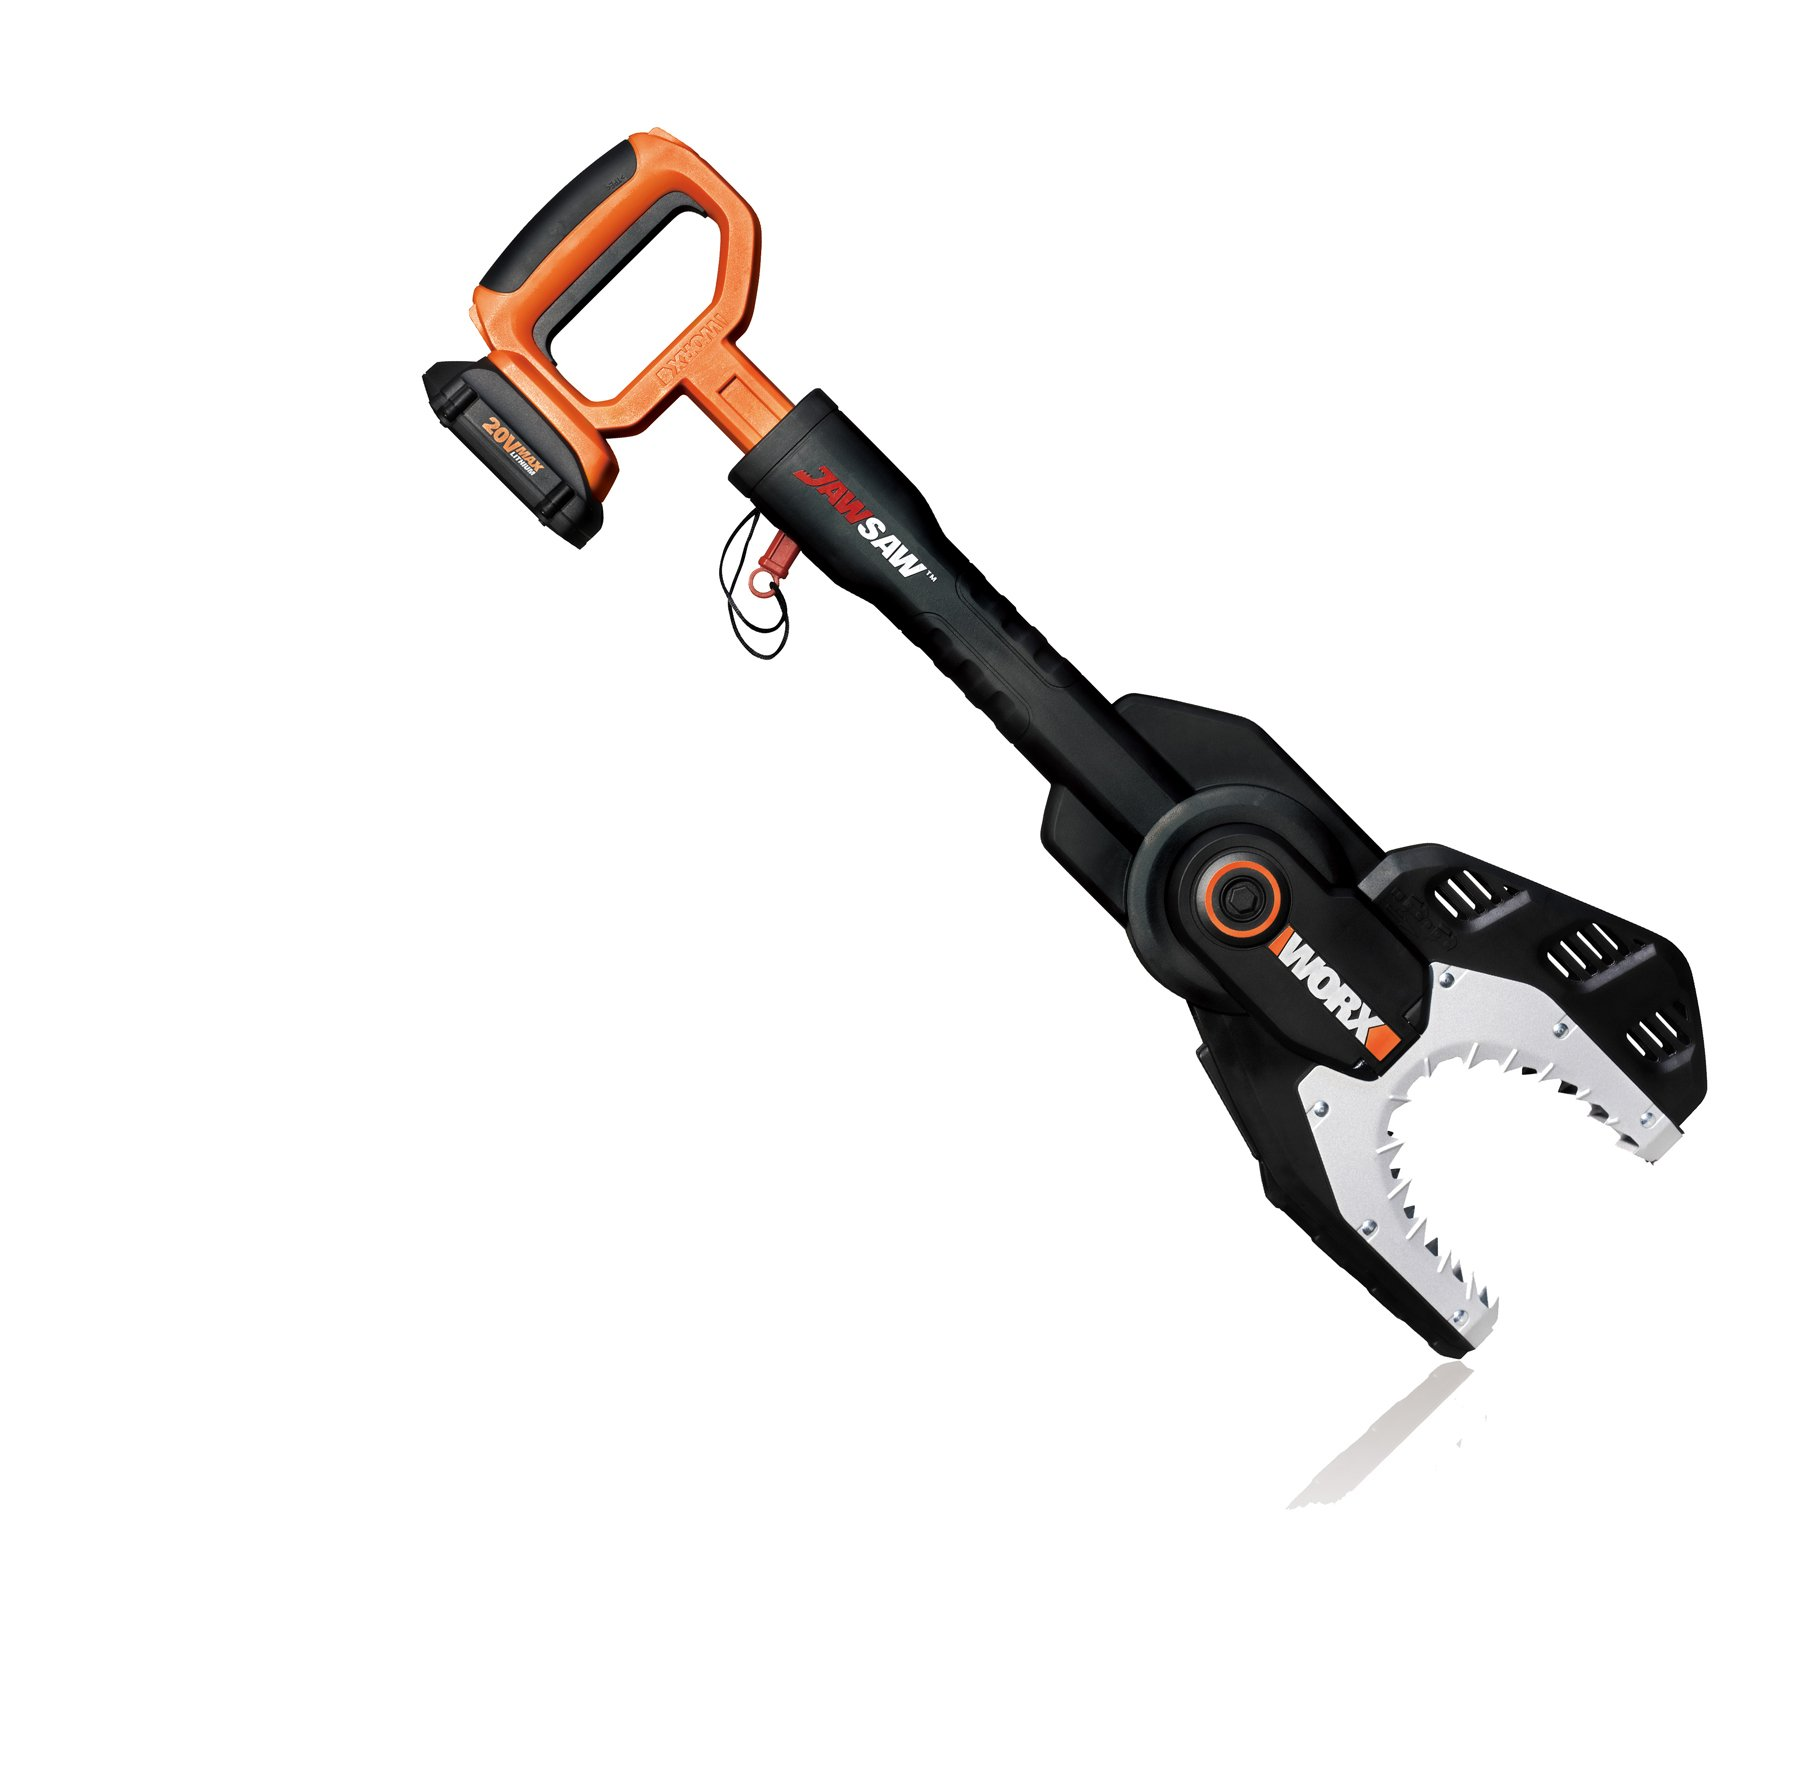 WORX WG320 Max Lithium Cordless Jawsaw Chain Saw, 20-volt, Battery and Charger Included by Worx